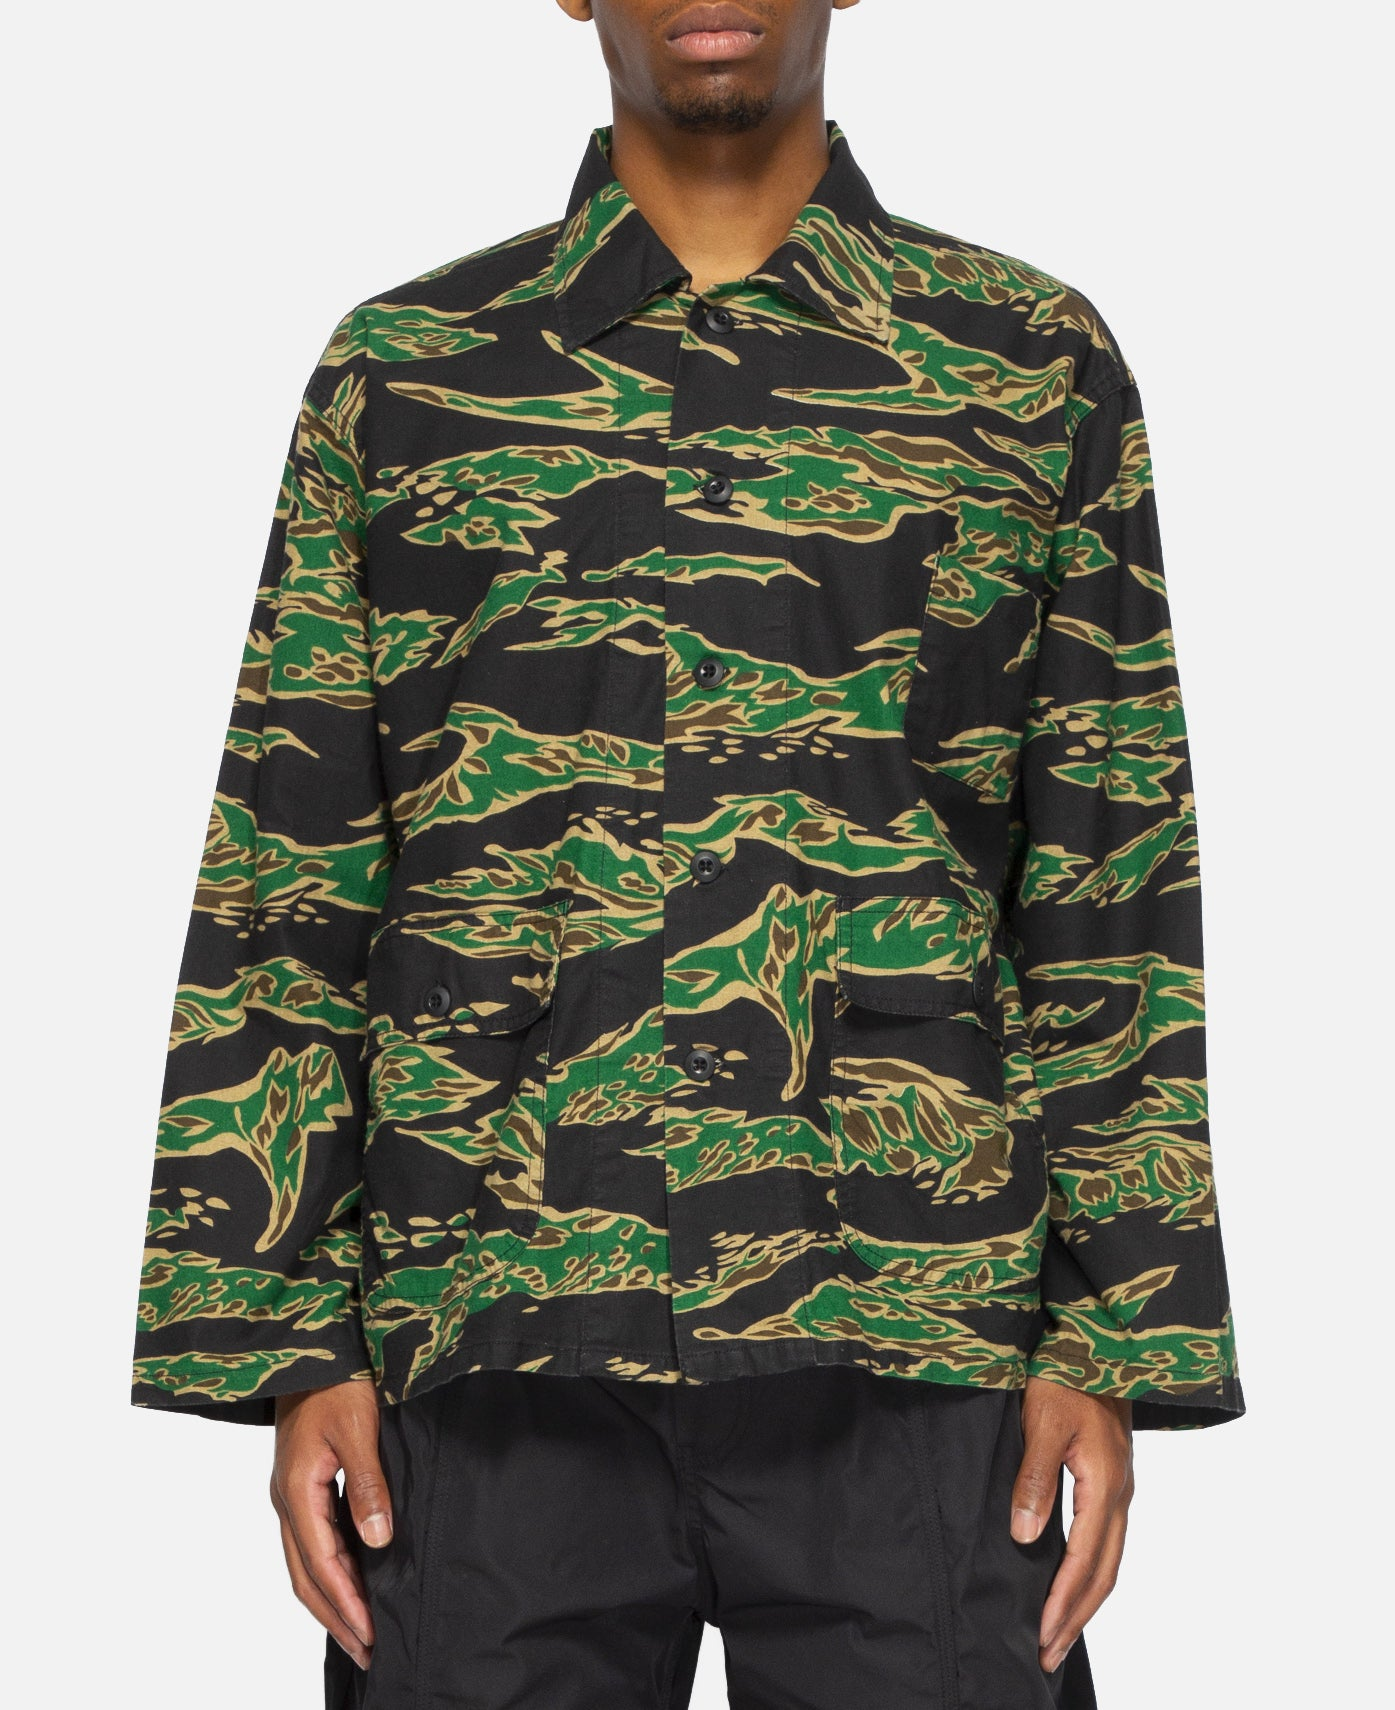 Hunting Shirt (Black)